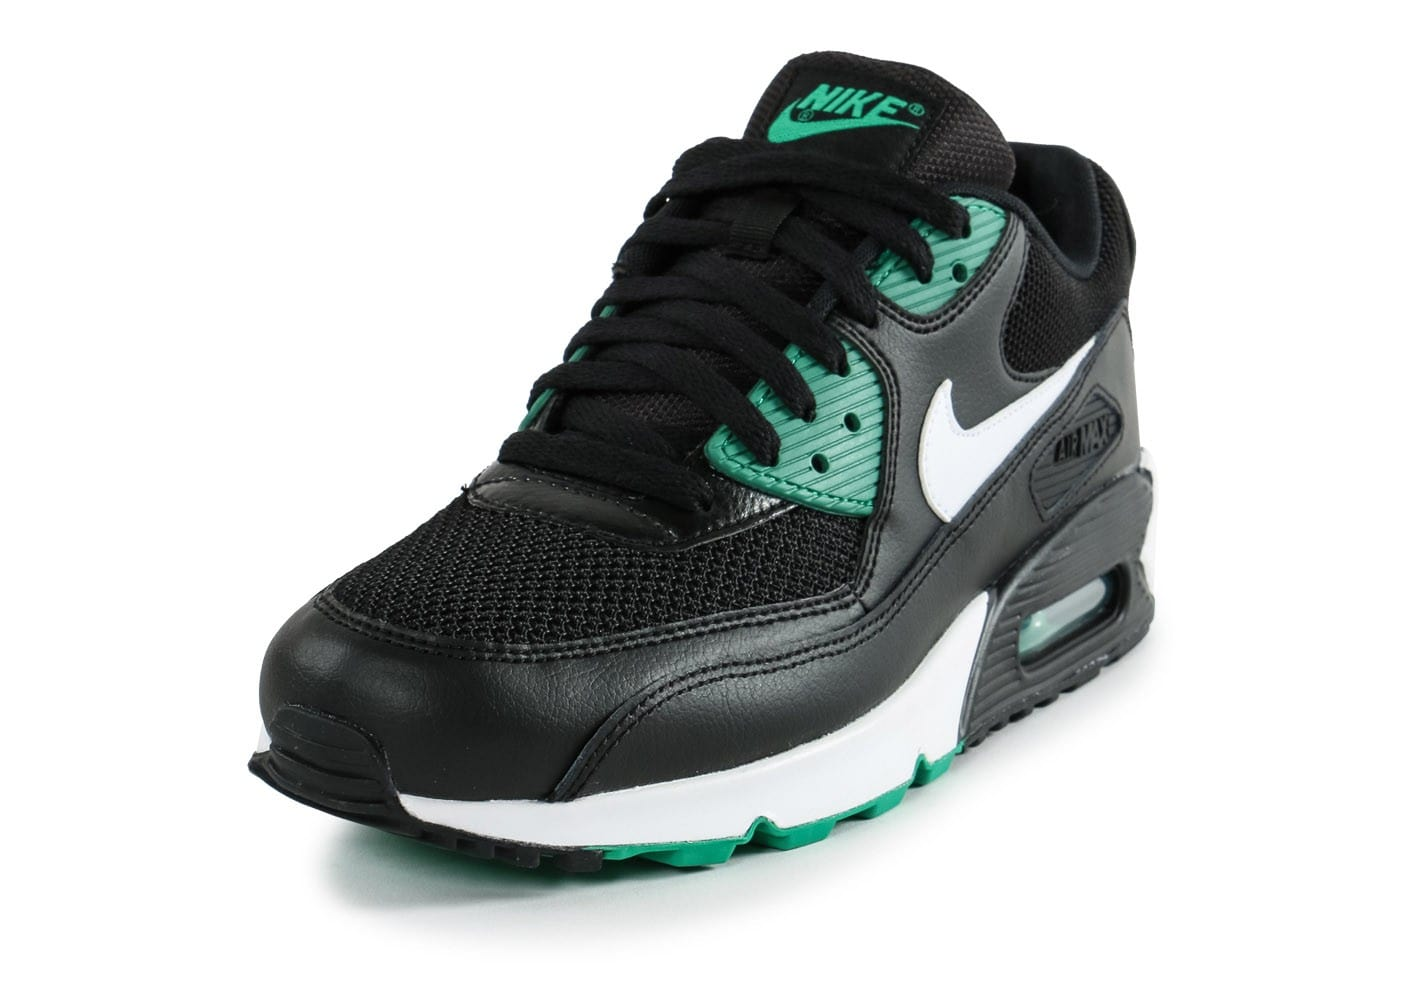 nike air max 90 essential noir vert chaussures homme chausport. Black Bedroom Furniture Sets. Home Design Ideas